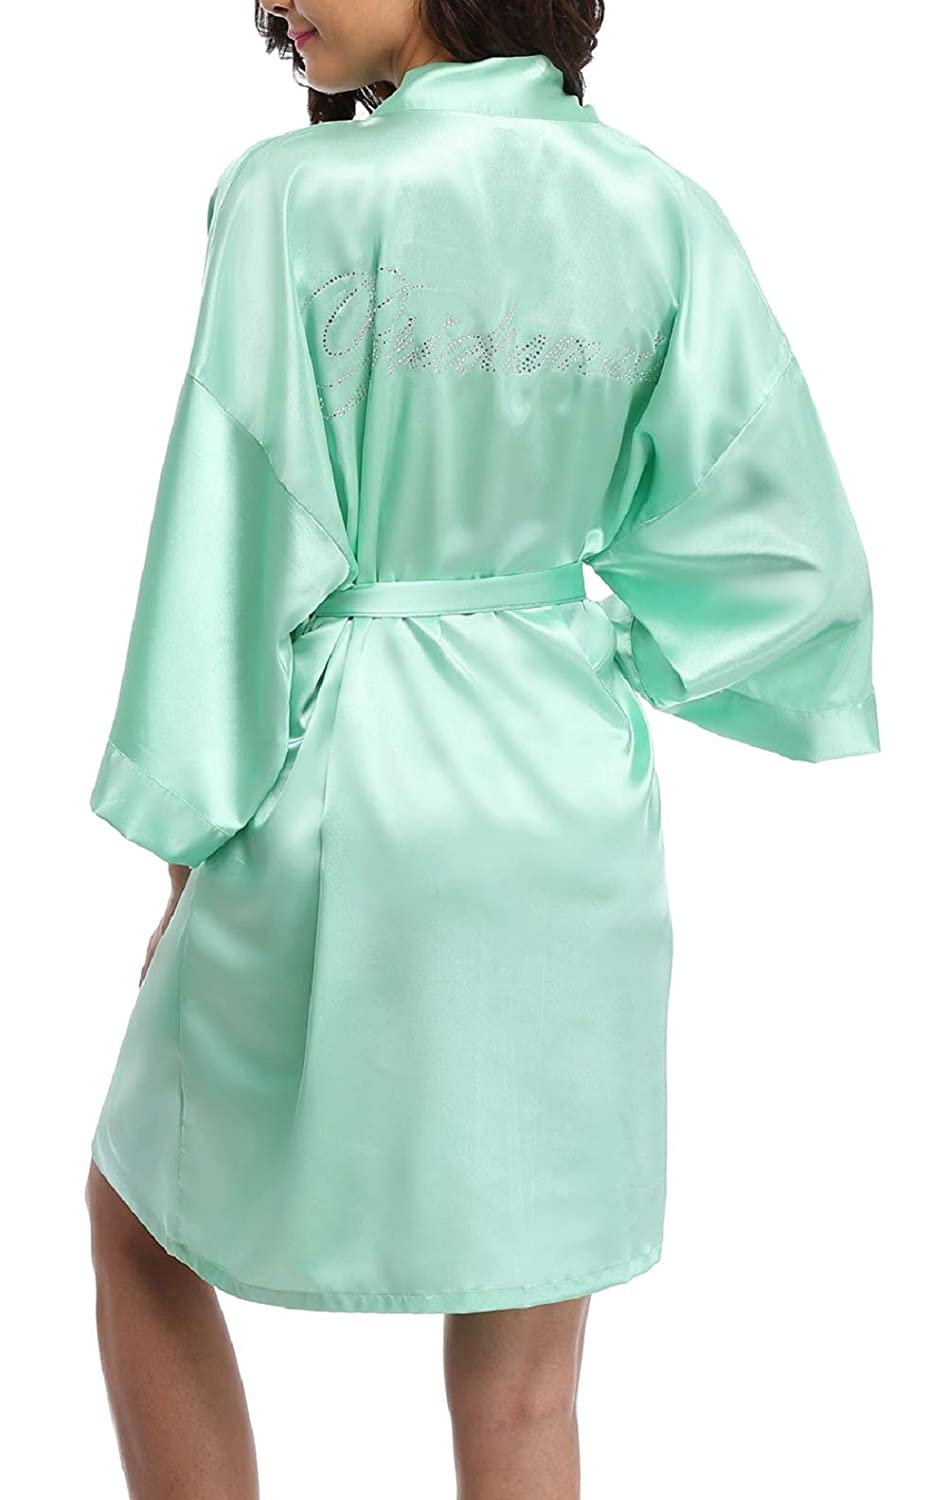 Light Green(bridesmaid) FADSHOW Bridal Robes Wedding Dressing Gowns with Rhinestones for Bride and Bridesmaids